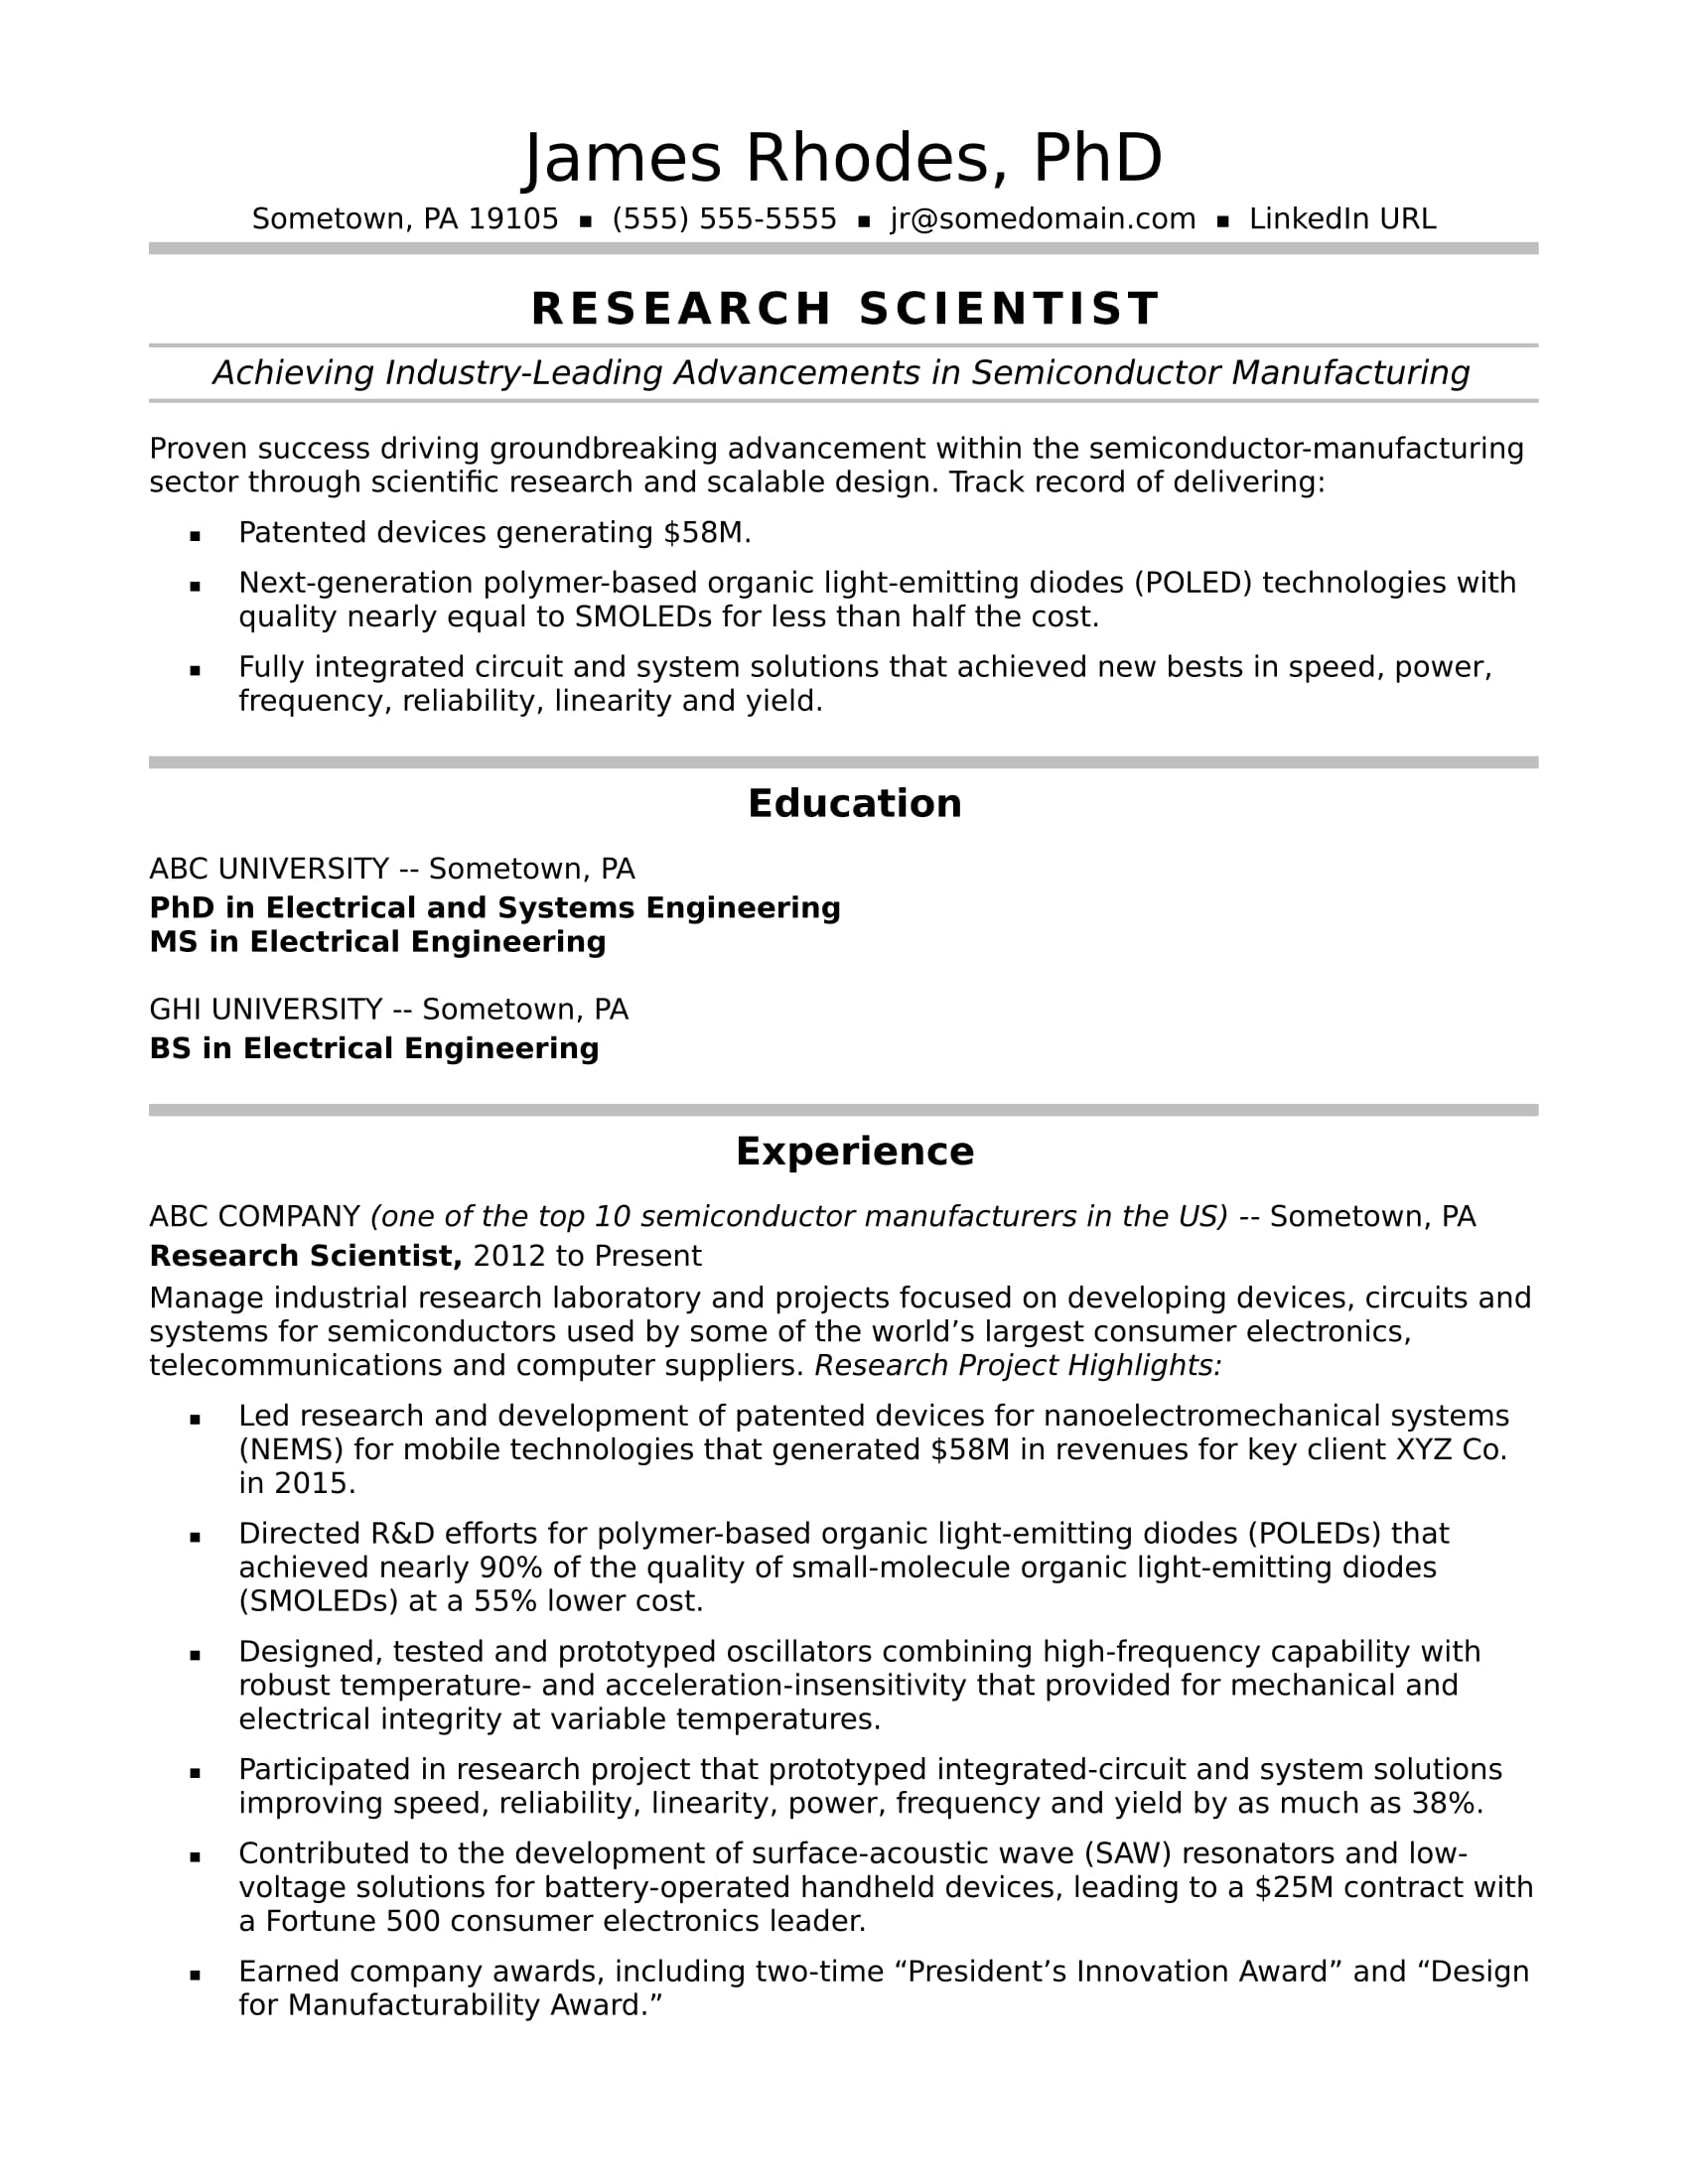 Research Scientist Resume Sample Monster  Research Scientist Resume